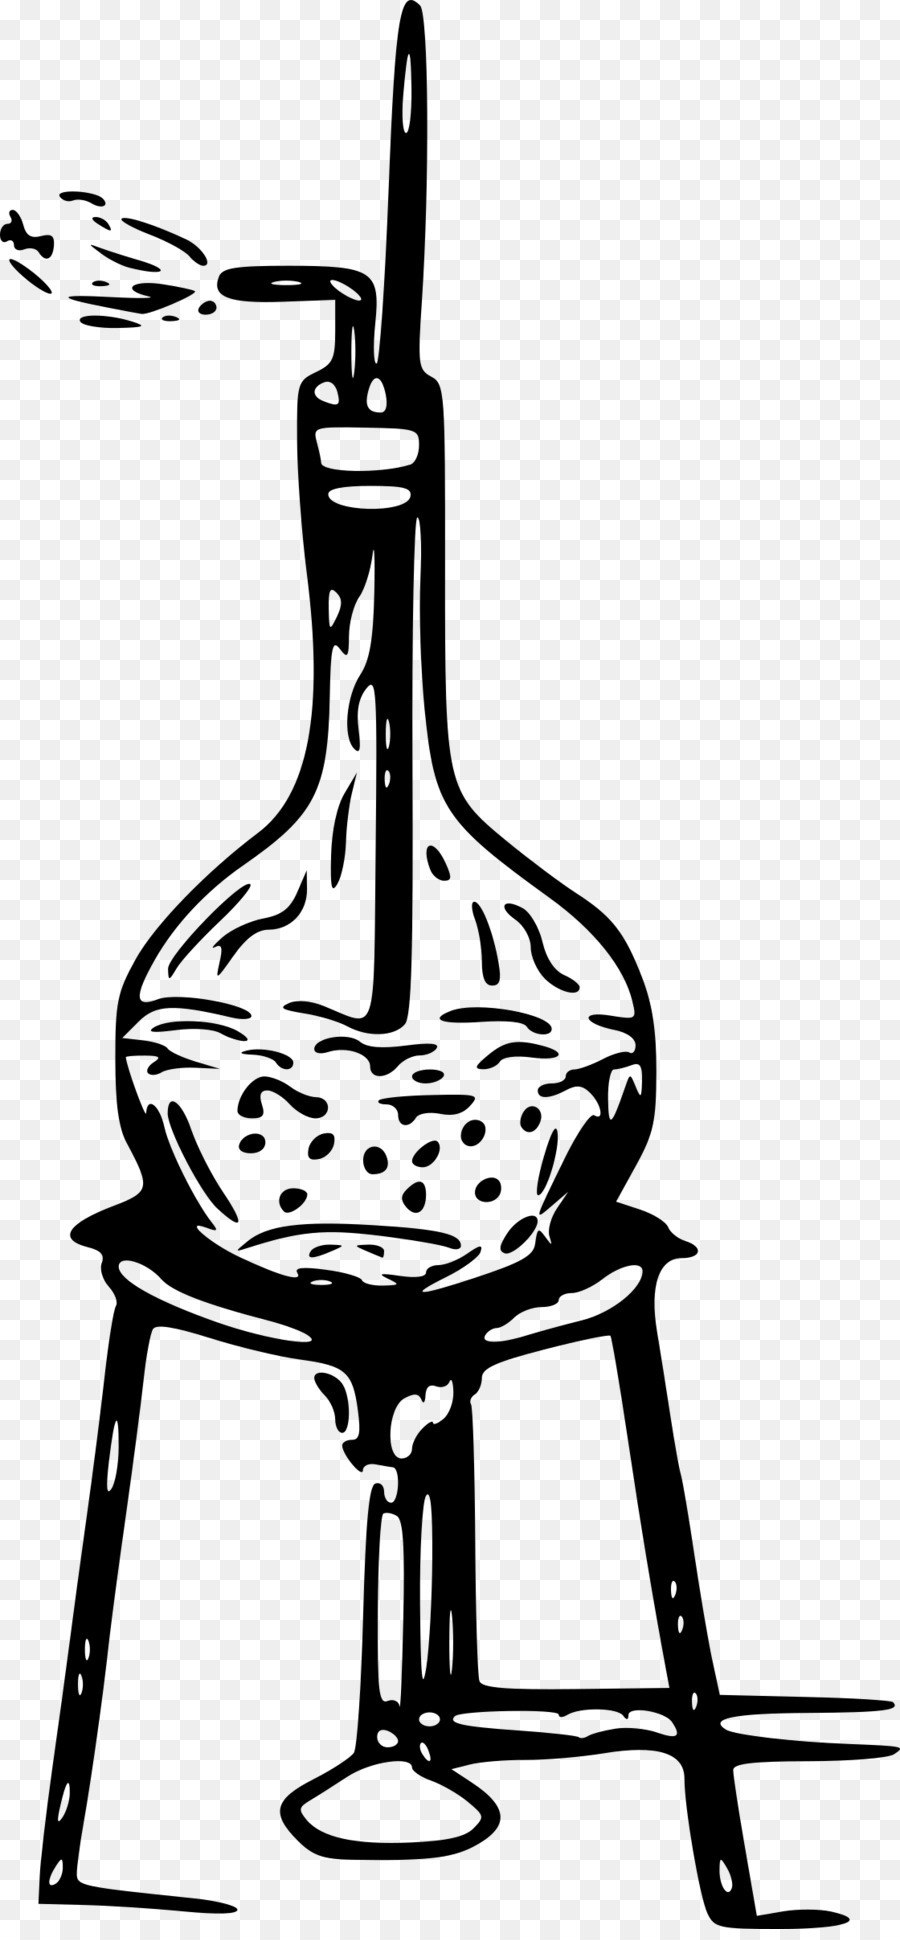 melting point png clipart Boiling point Clip art